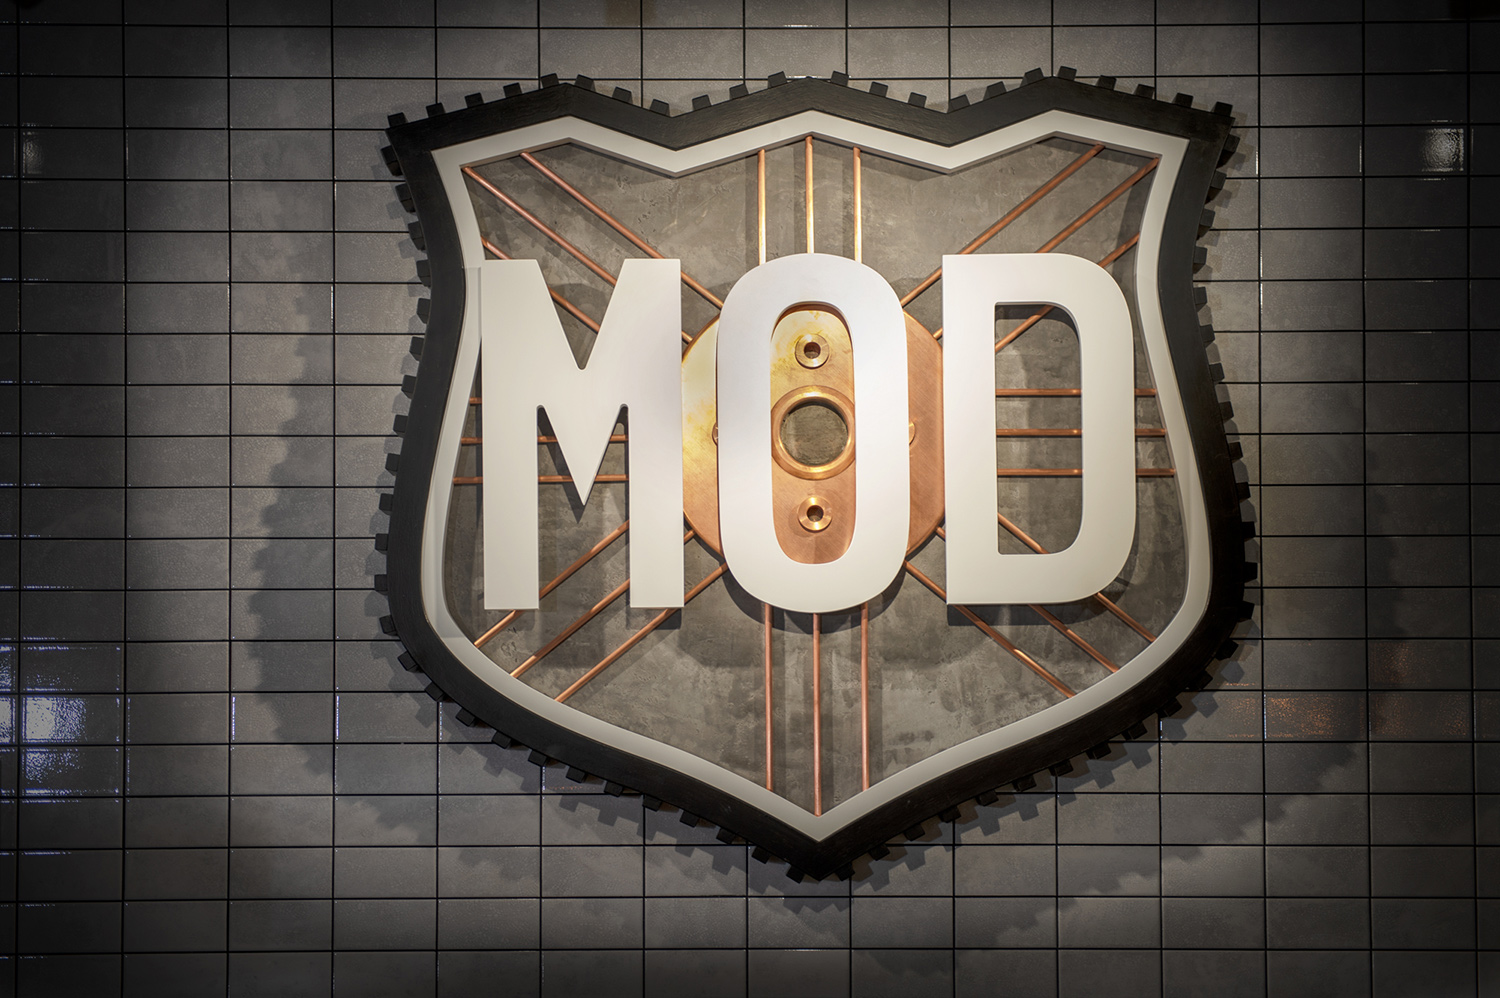 A MOD logo made out of tyres and spokes